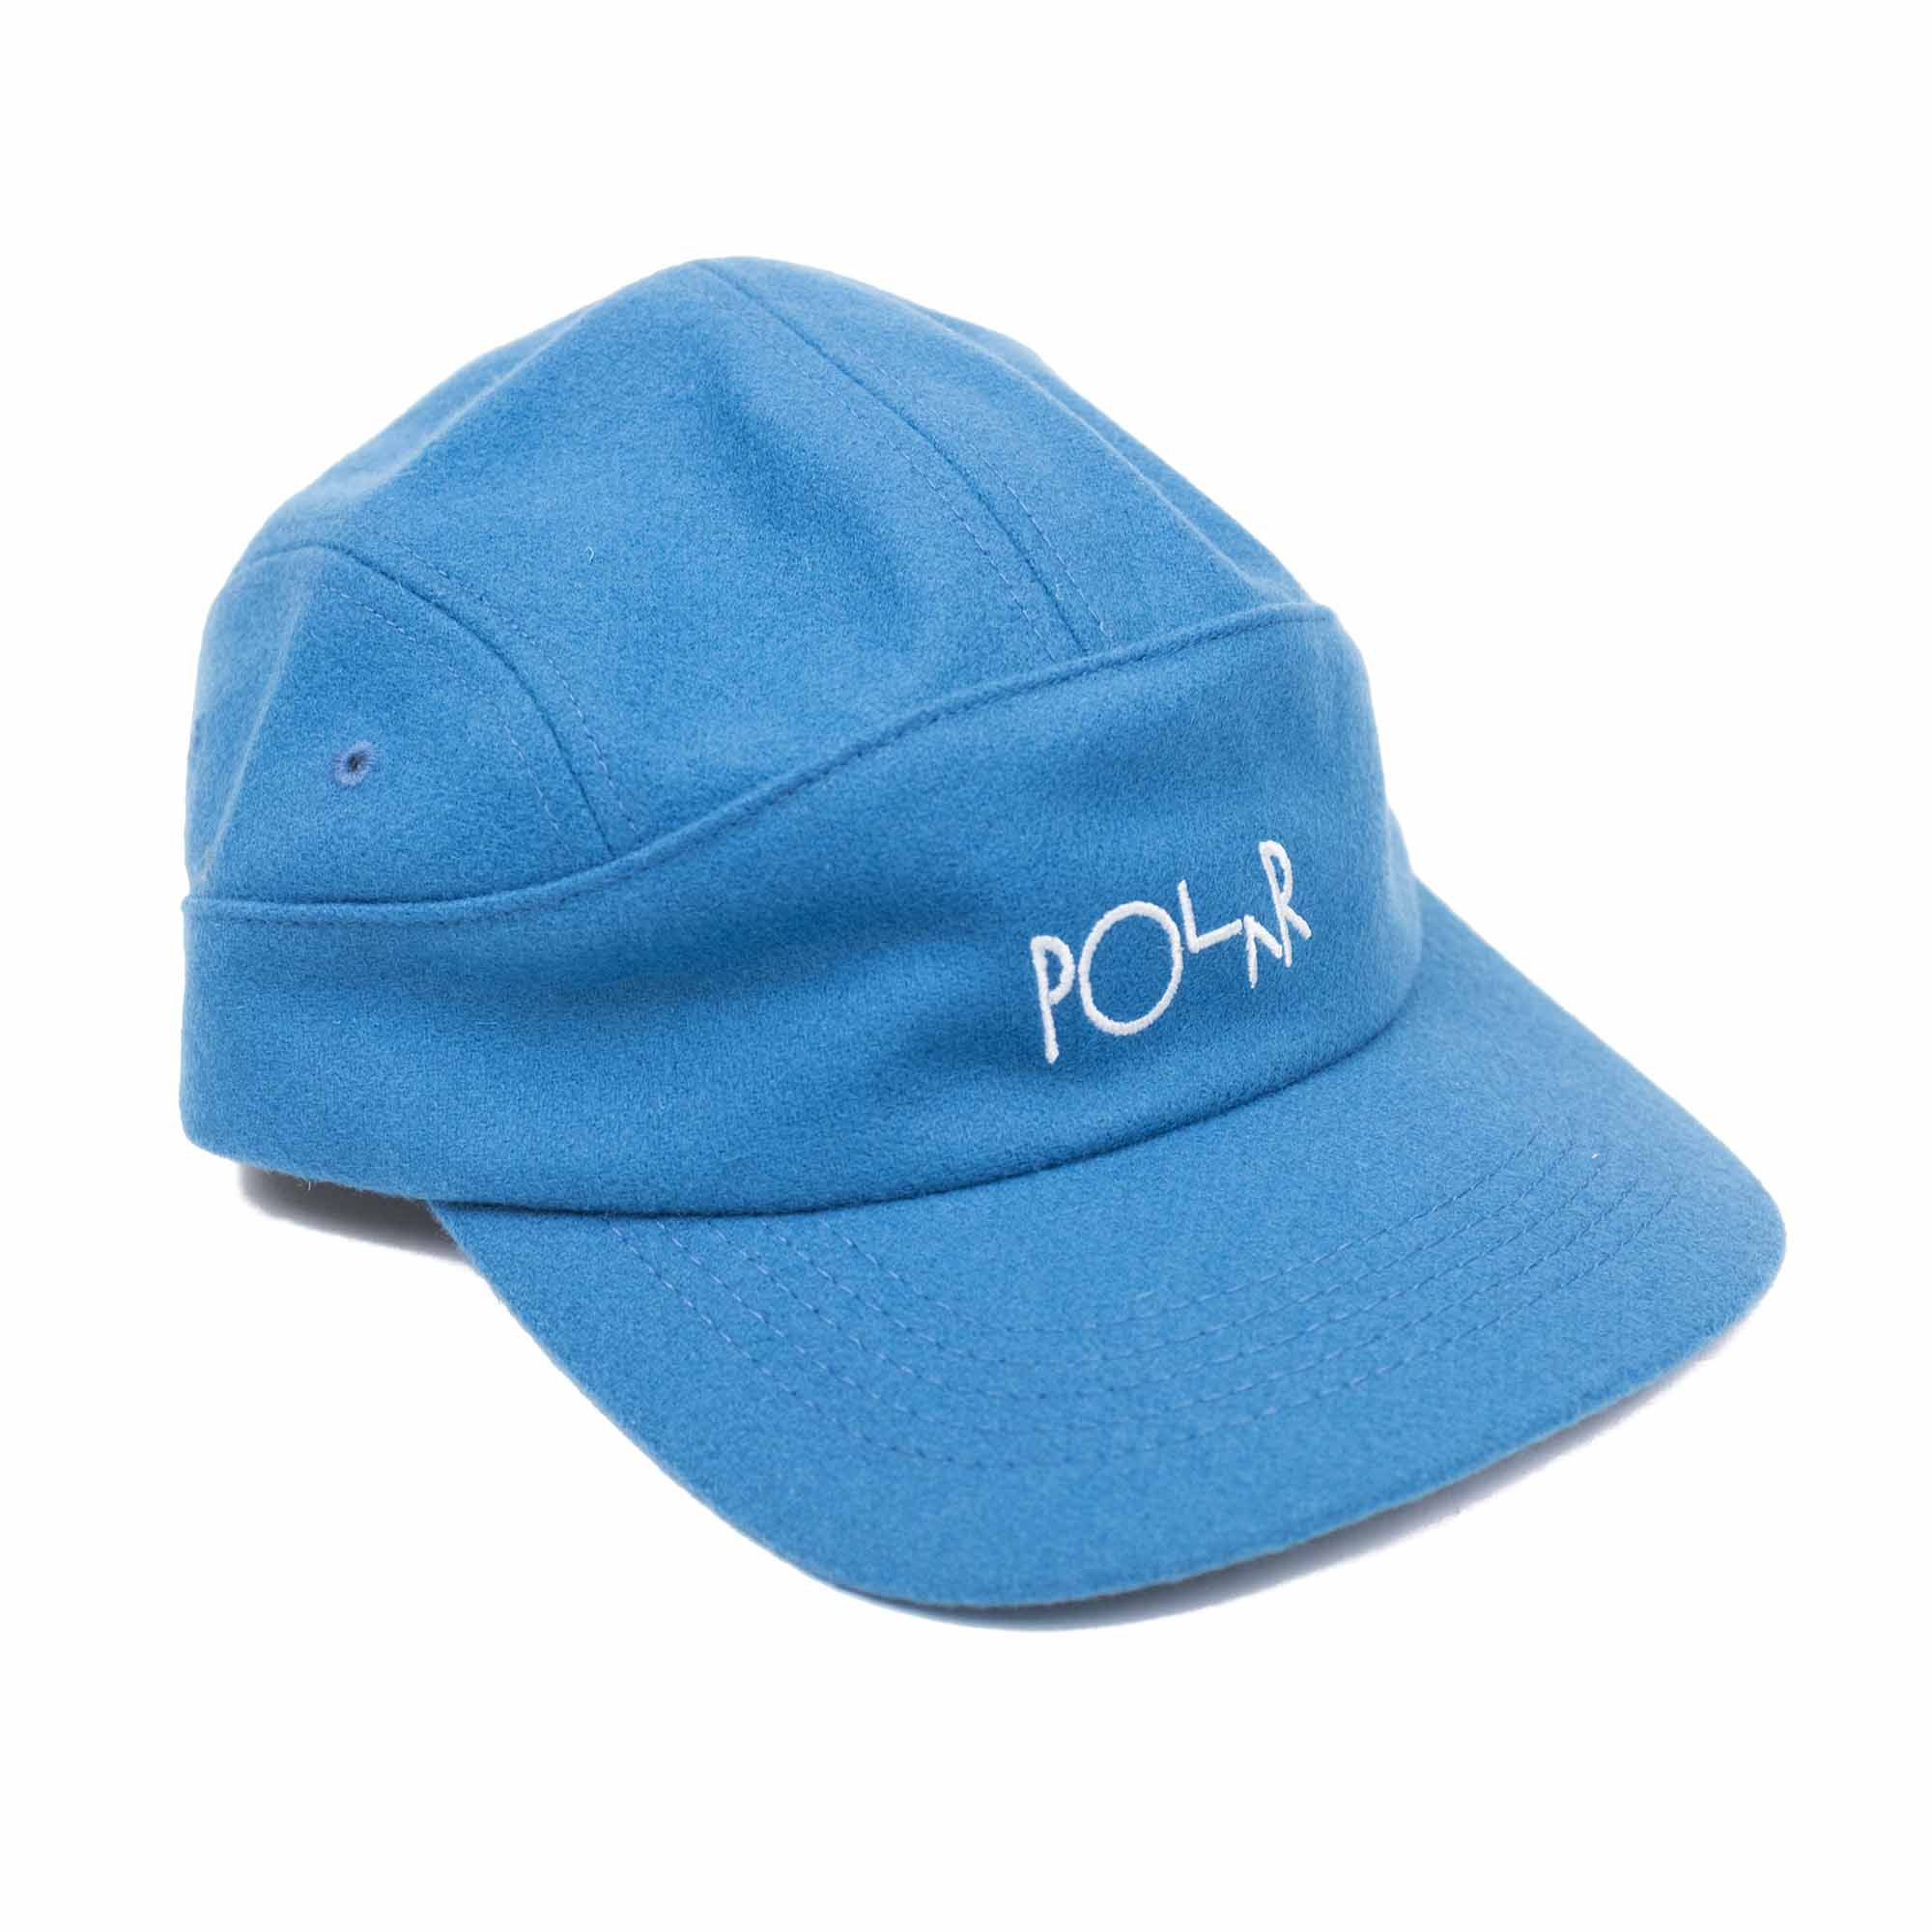 Polar Skate Co. Wool Speed Cap - Mykonos Blue